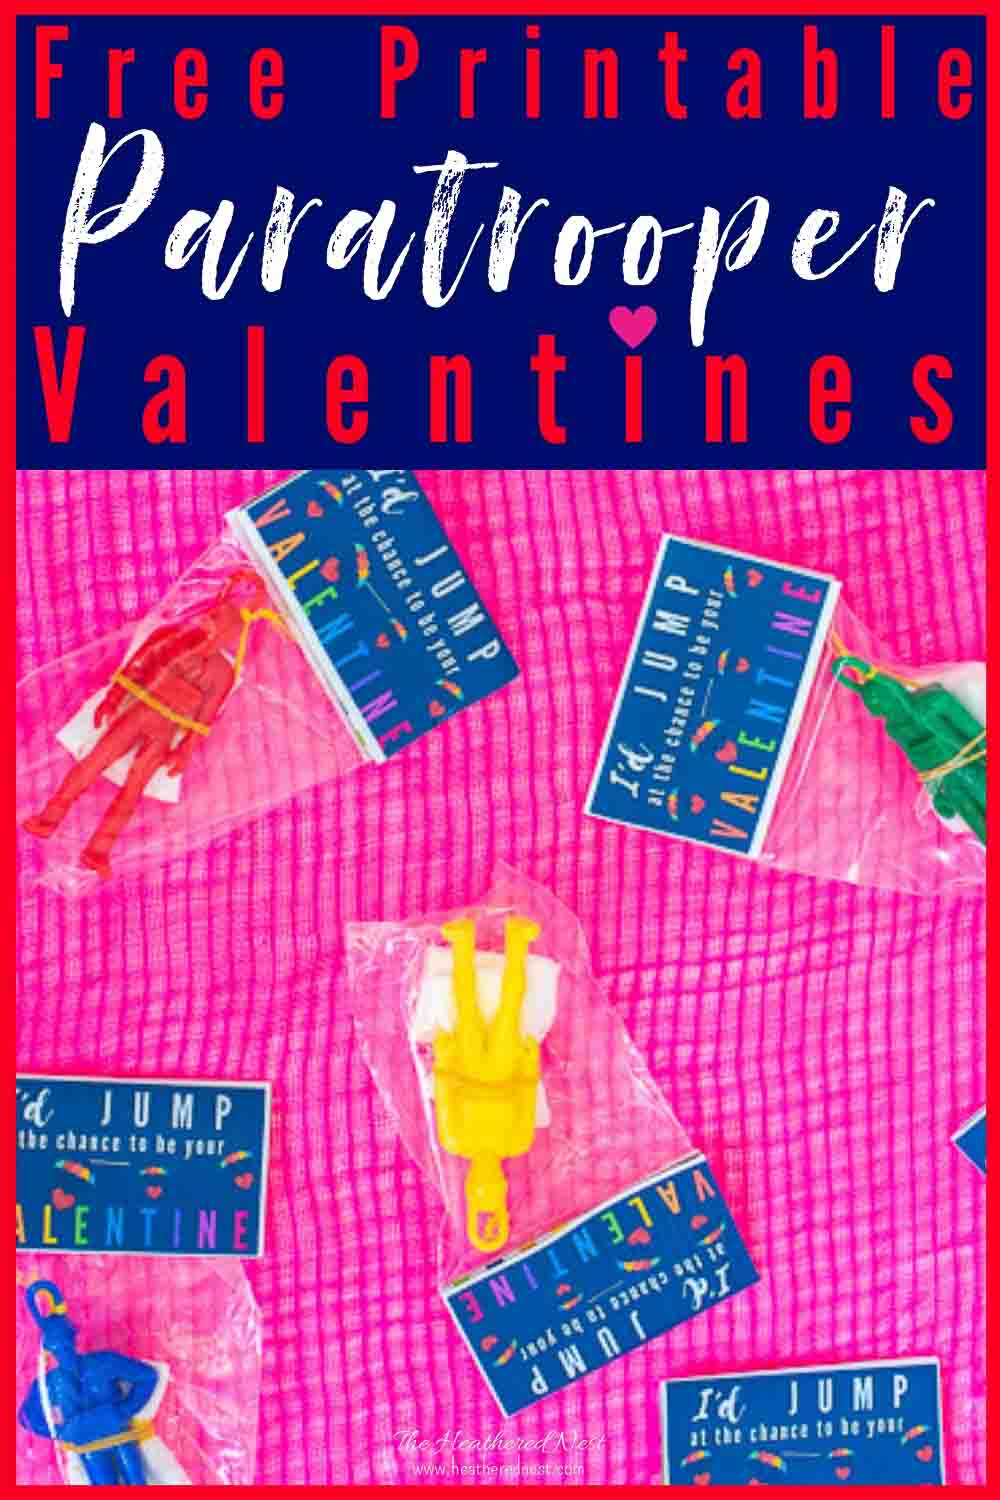 Free Printable Paratrooper Valentines for Kids! These parachuting soldier toys are fun and great for school Valentine parties with a no-candy rule! #freeprintablevalentines #valentinesforboysideas #freeprintablevalentineideas #nocandyvalentines #noncandyvalentines #valentinesforkidsideas #schoolvalentinesideas #freeprintablevalentinesideas #boysvalentinesideas #parachute #paratroopervalentines #parachutevalentines #coolvalentinesforkids #valentineideasforkids